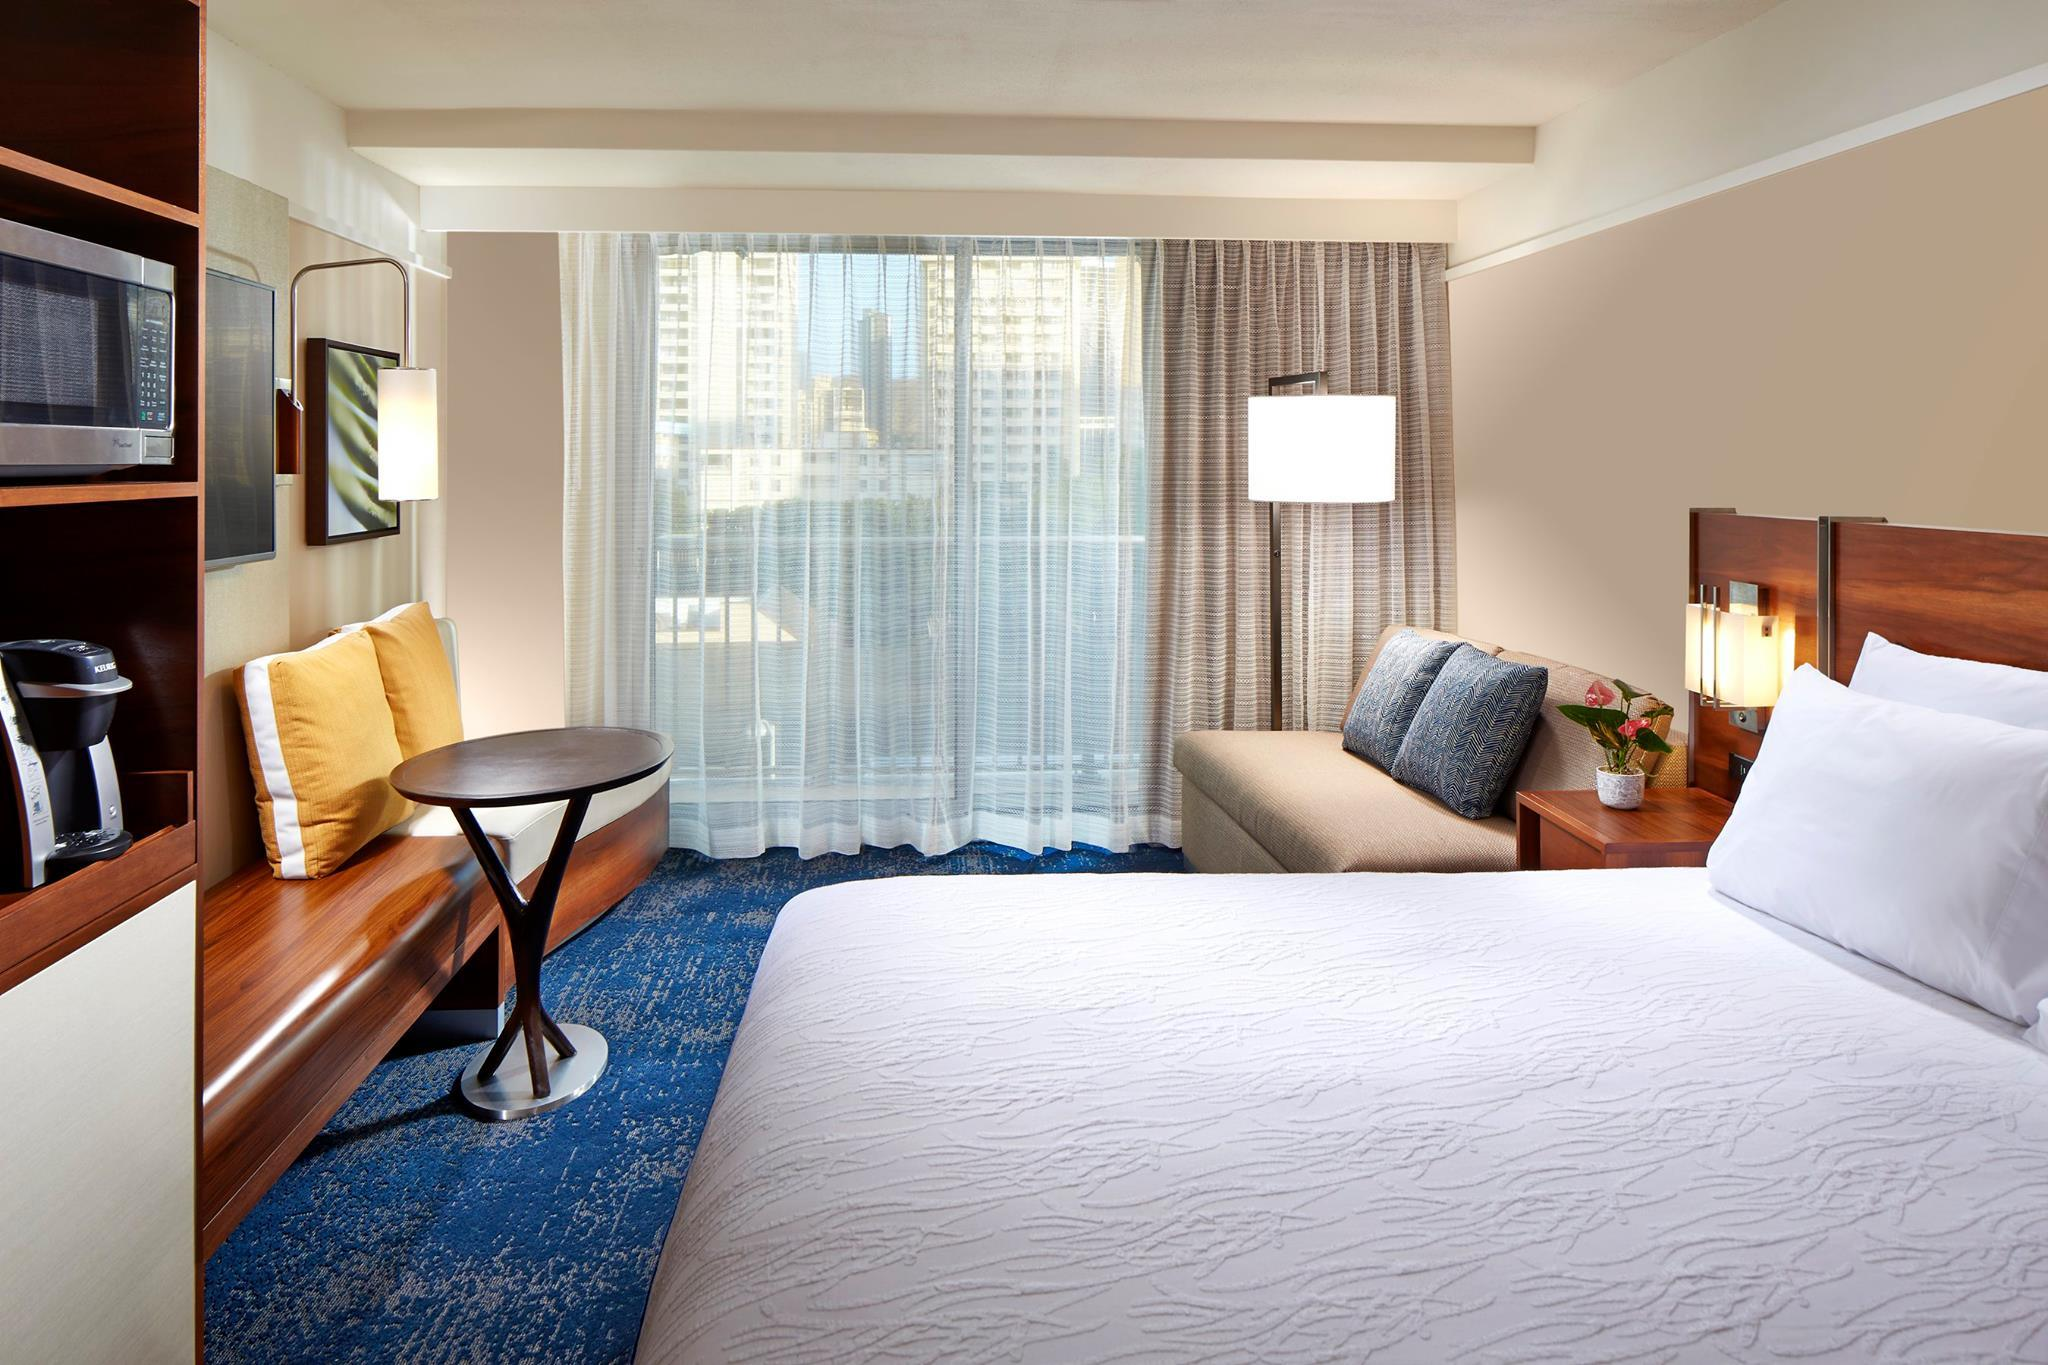 Stay: Hilton Garden Inn Waikiki Beach, Oahu